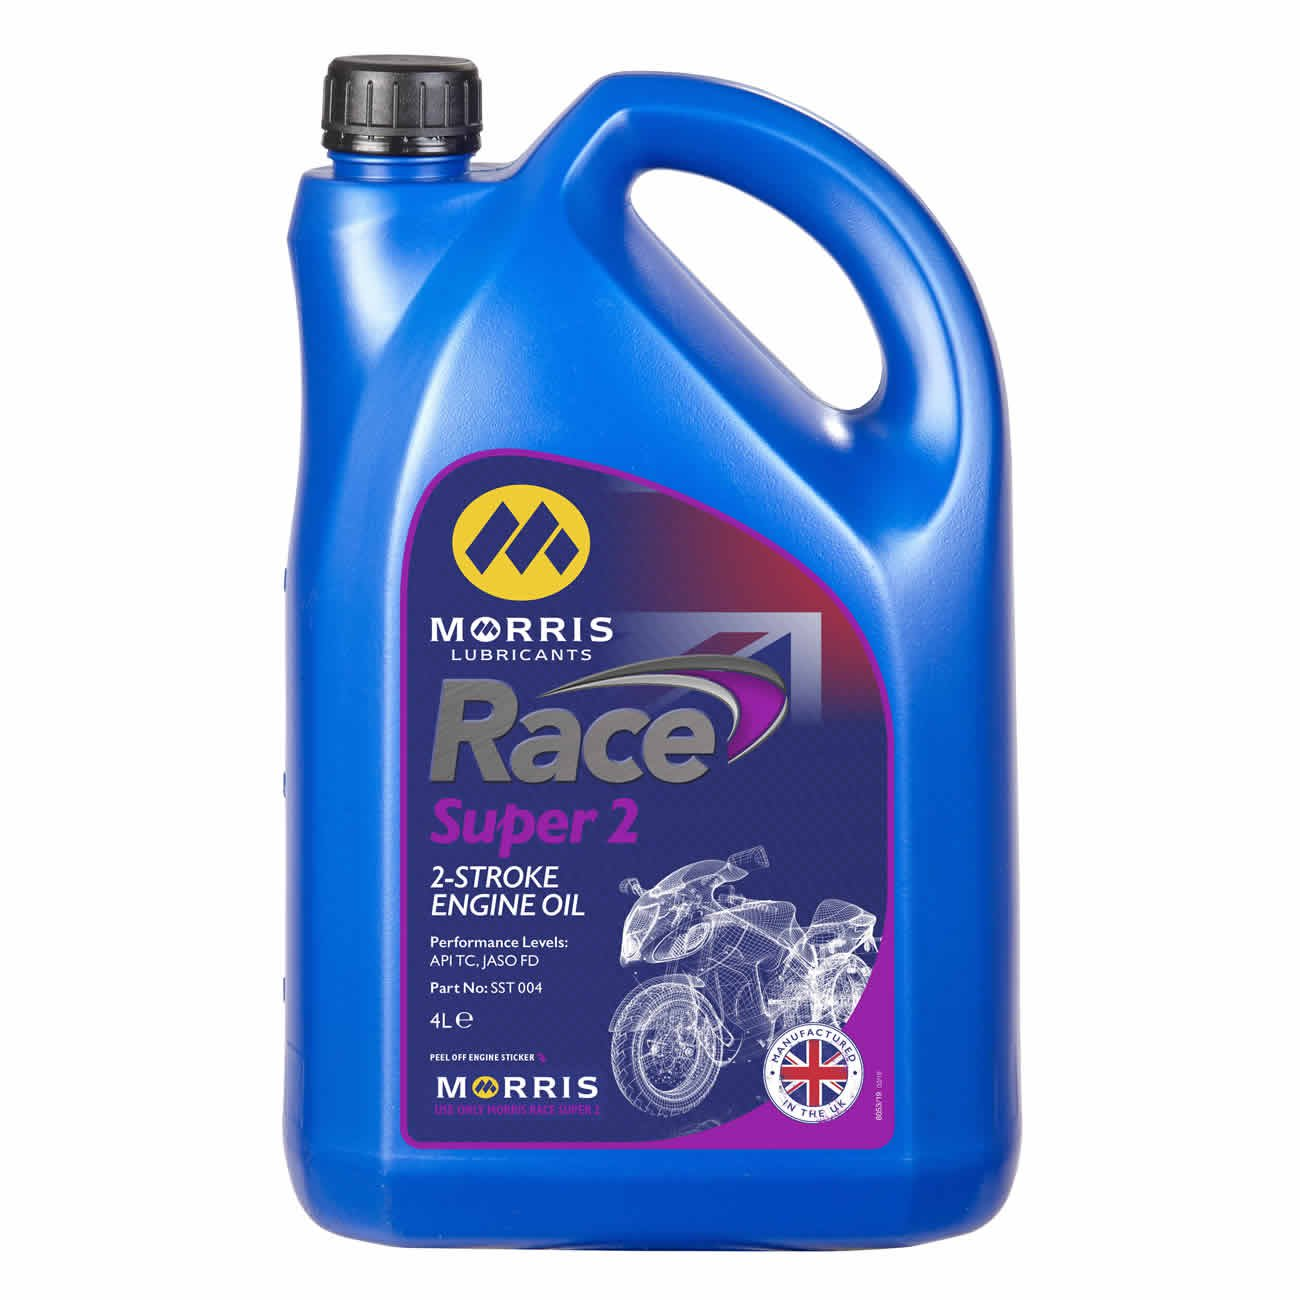 Race Super 2T, Engine Oil, Morris Lubricants - Averys Motorcycles